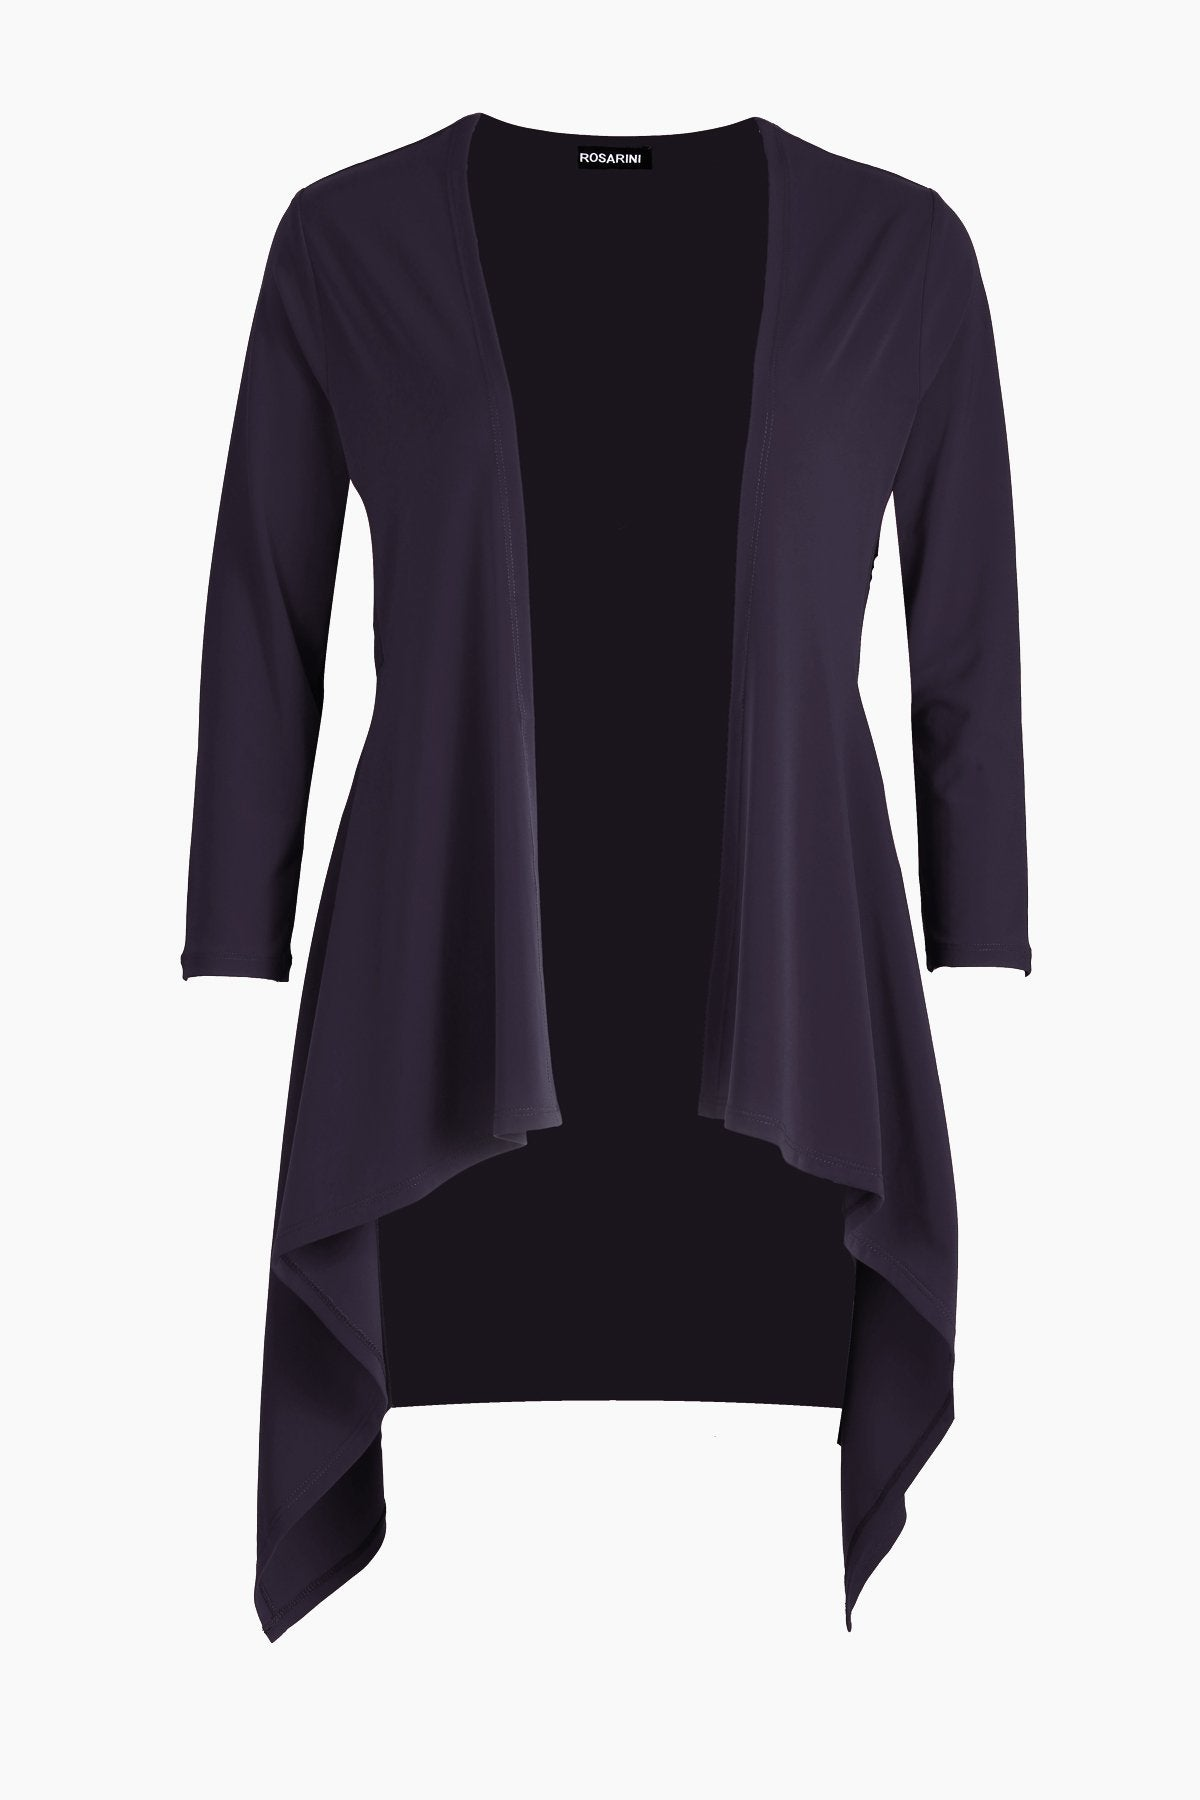 Women's Black Long Sleeve Contour Cardigan Rosarini